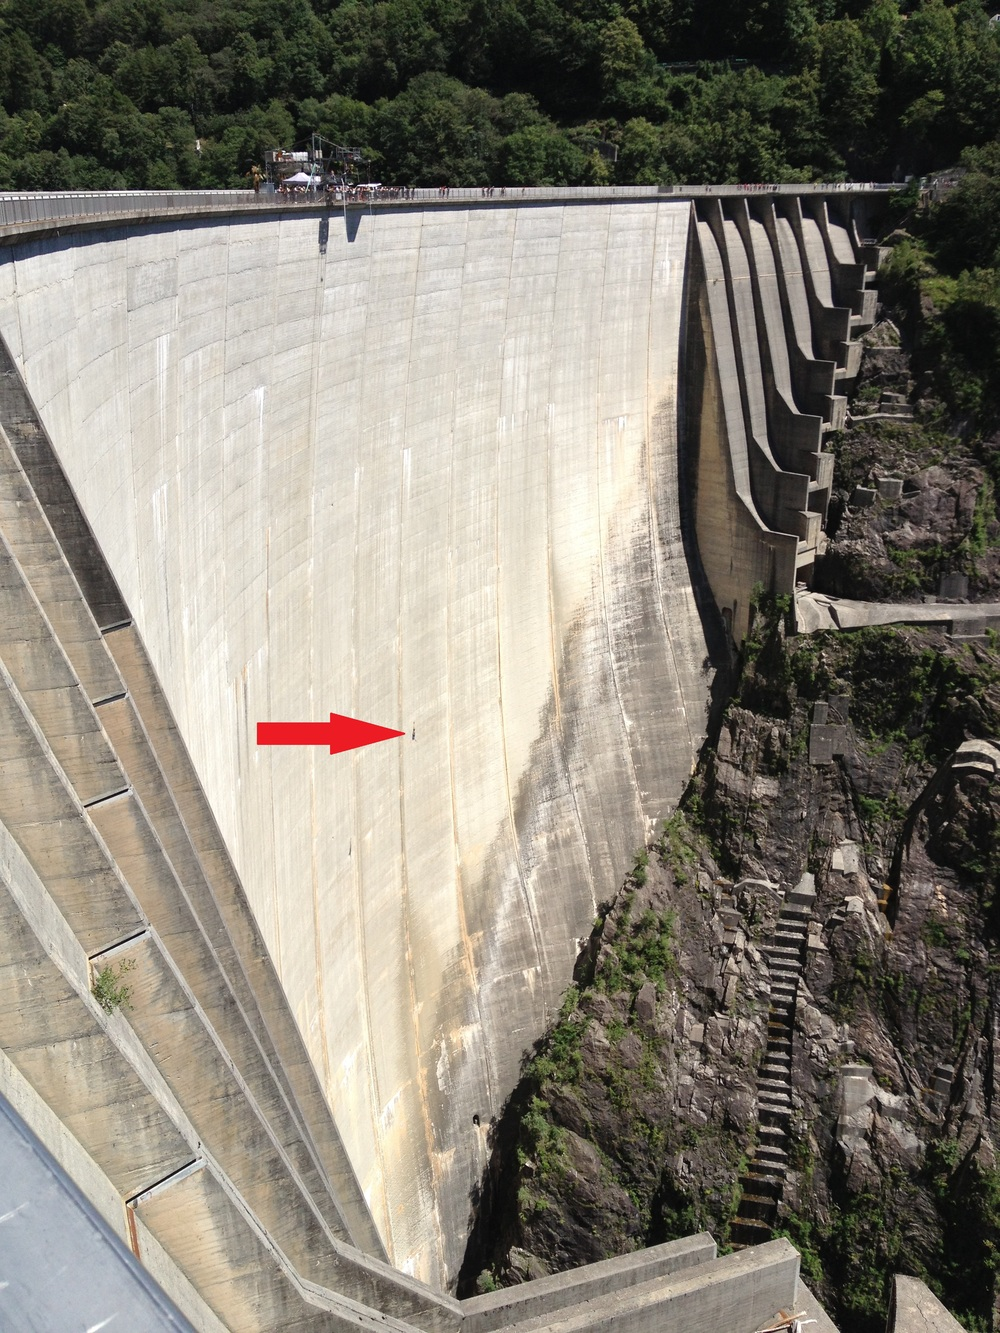 The red arrow is pointing to a jumper